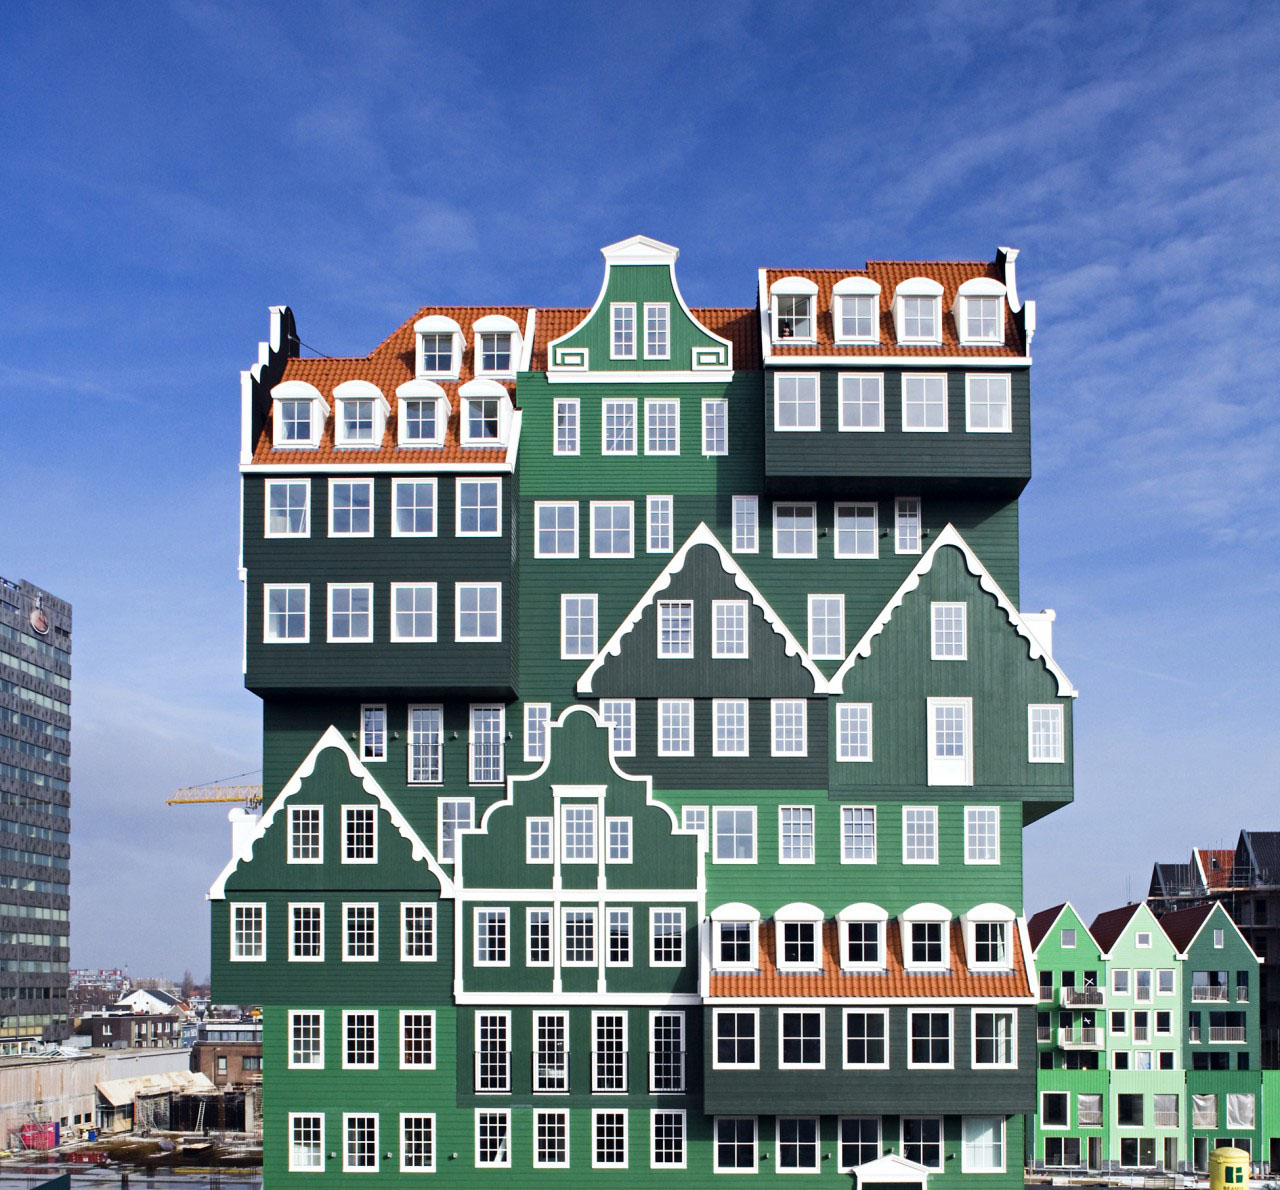 inntel hotel amsterdam zaandam a real life gingerbread house idesignarch interior design. Black Bedroom Furniture Sets. Home Design Ideas